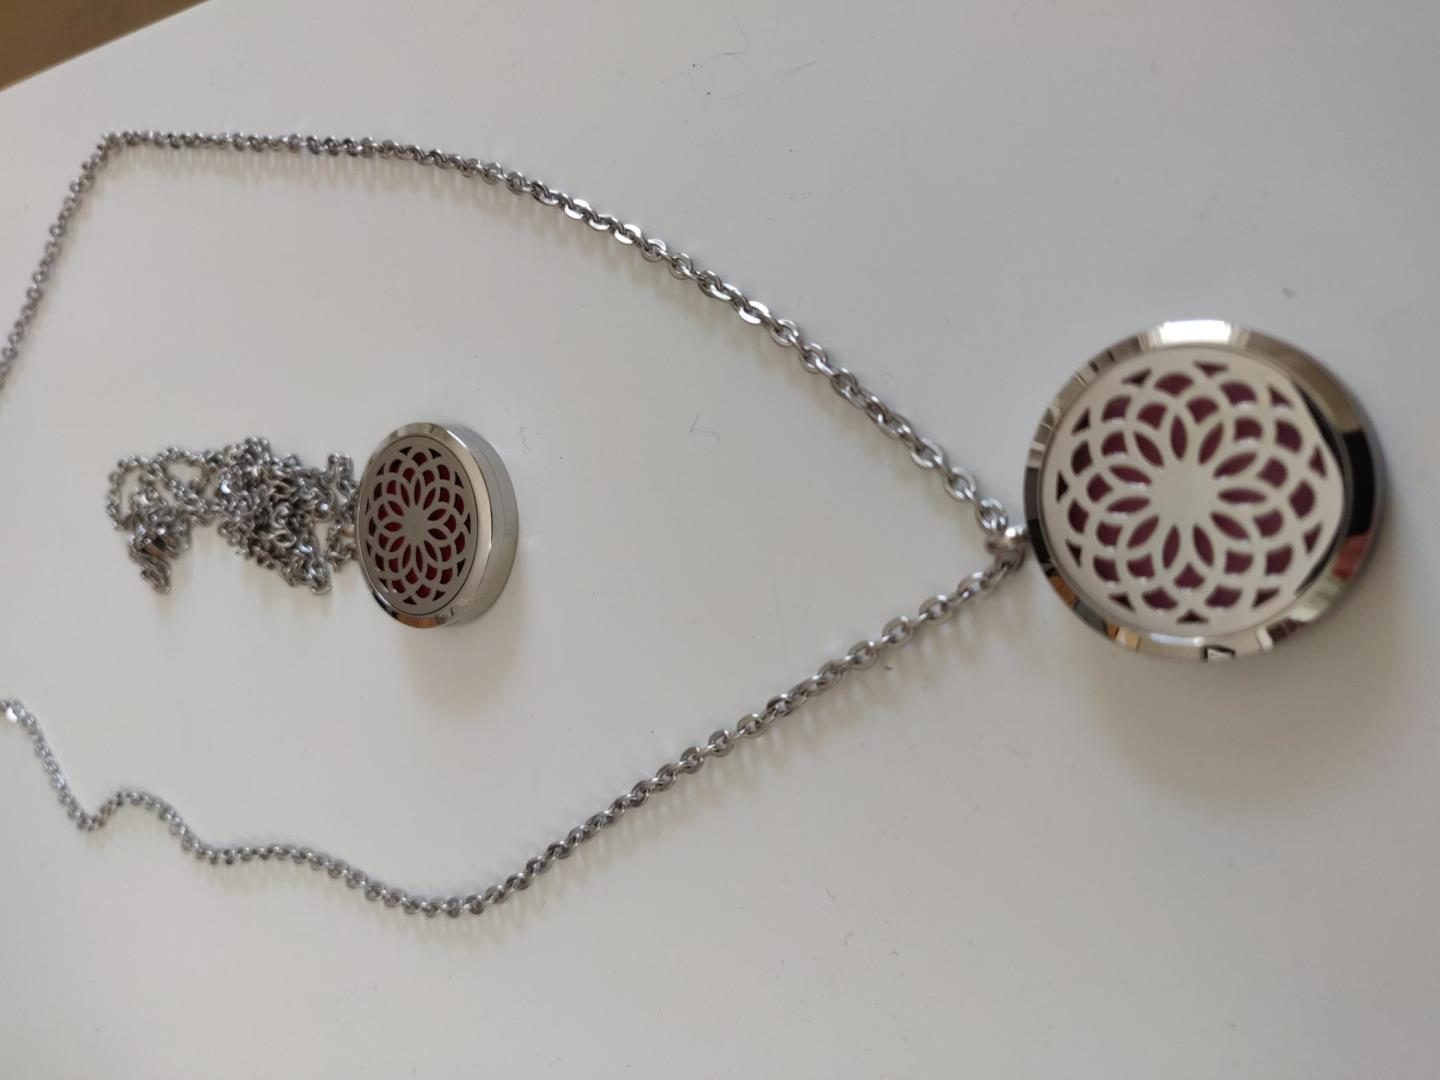 Aromatherapy necklace with 1 ml essential oil